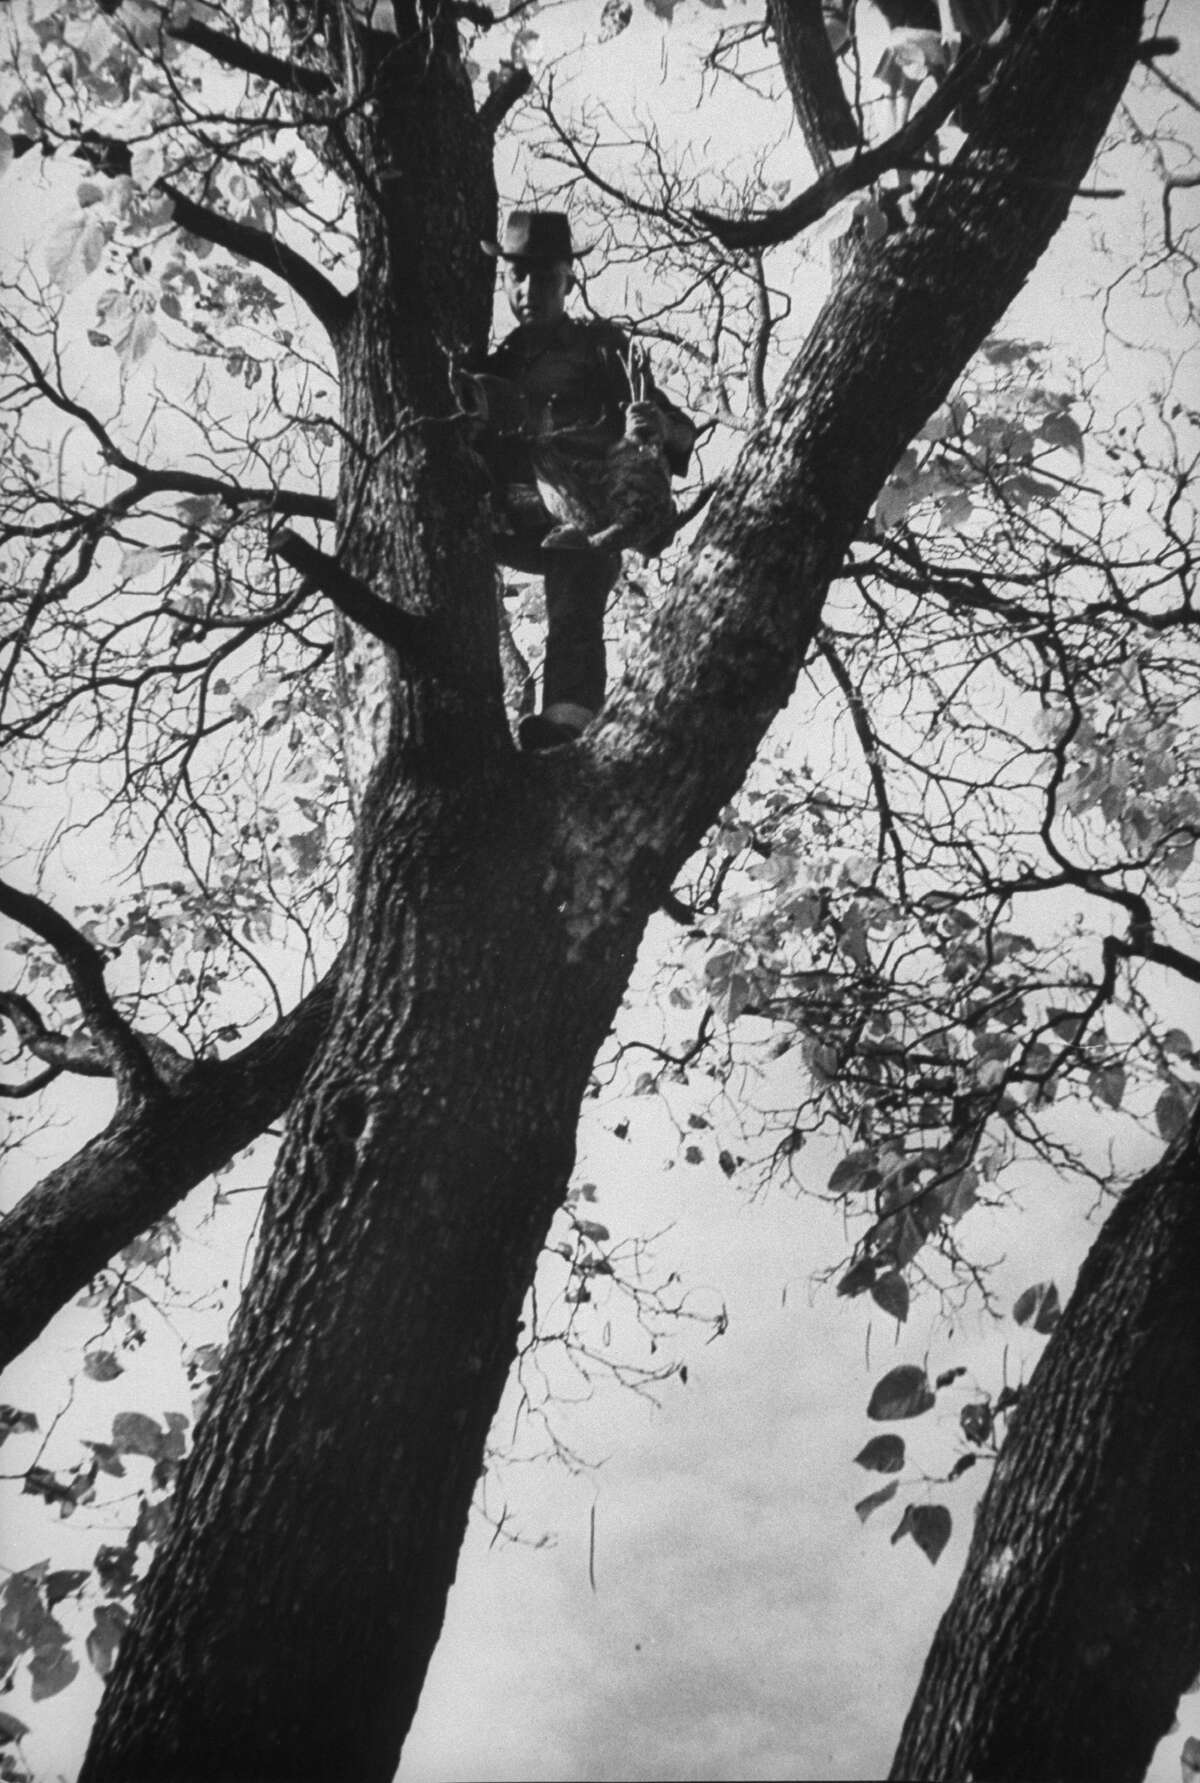 Up the elm tree after fast climb a farmer snares a bird that had found itself a handy roost in Yellville, Arkansas in 1952.